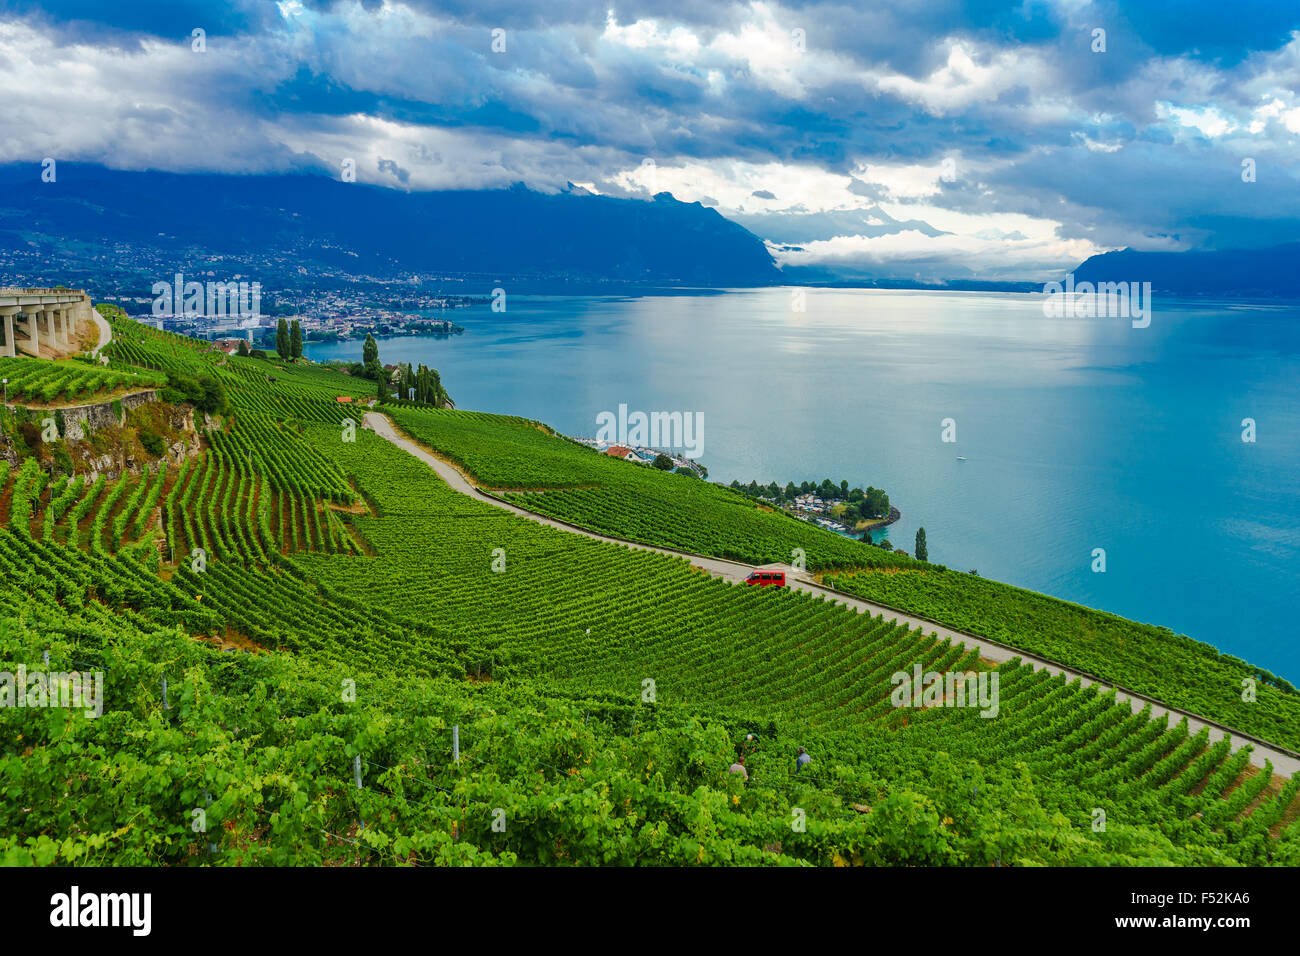 Looking out from the vineyards at Lavaux, a UNESCO World Heritage Site. Lake Geneva, Switzerland. - Stock Image